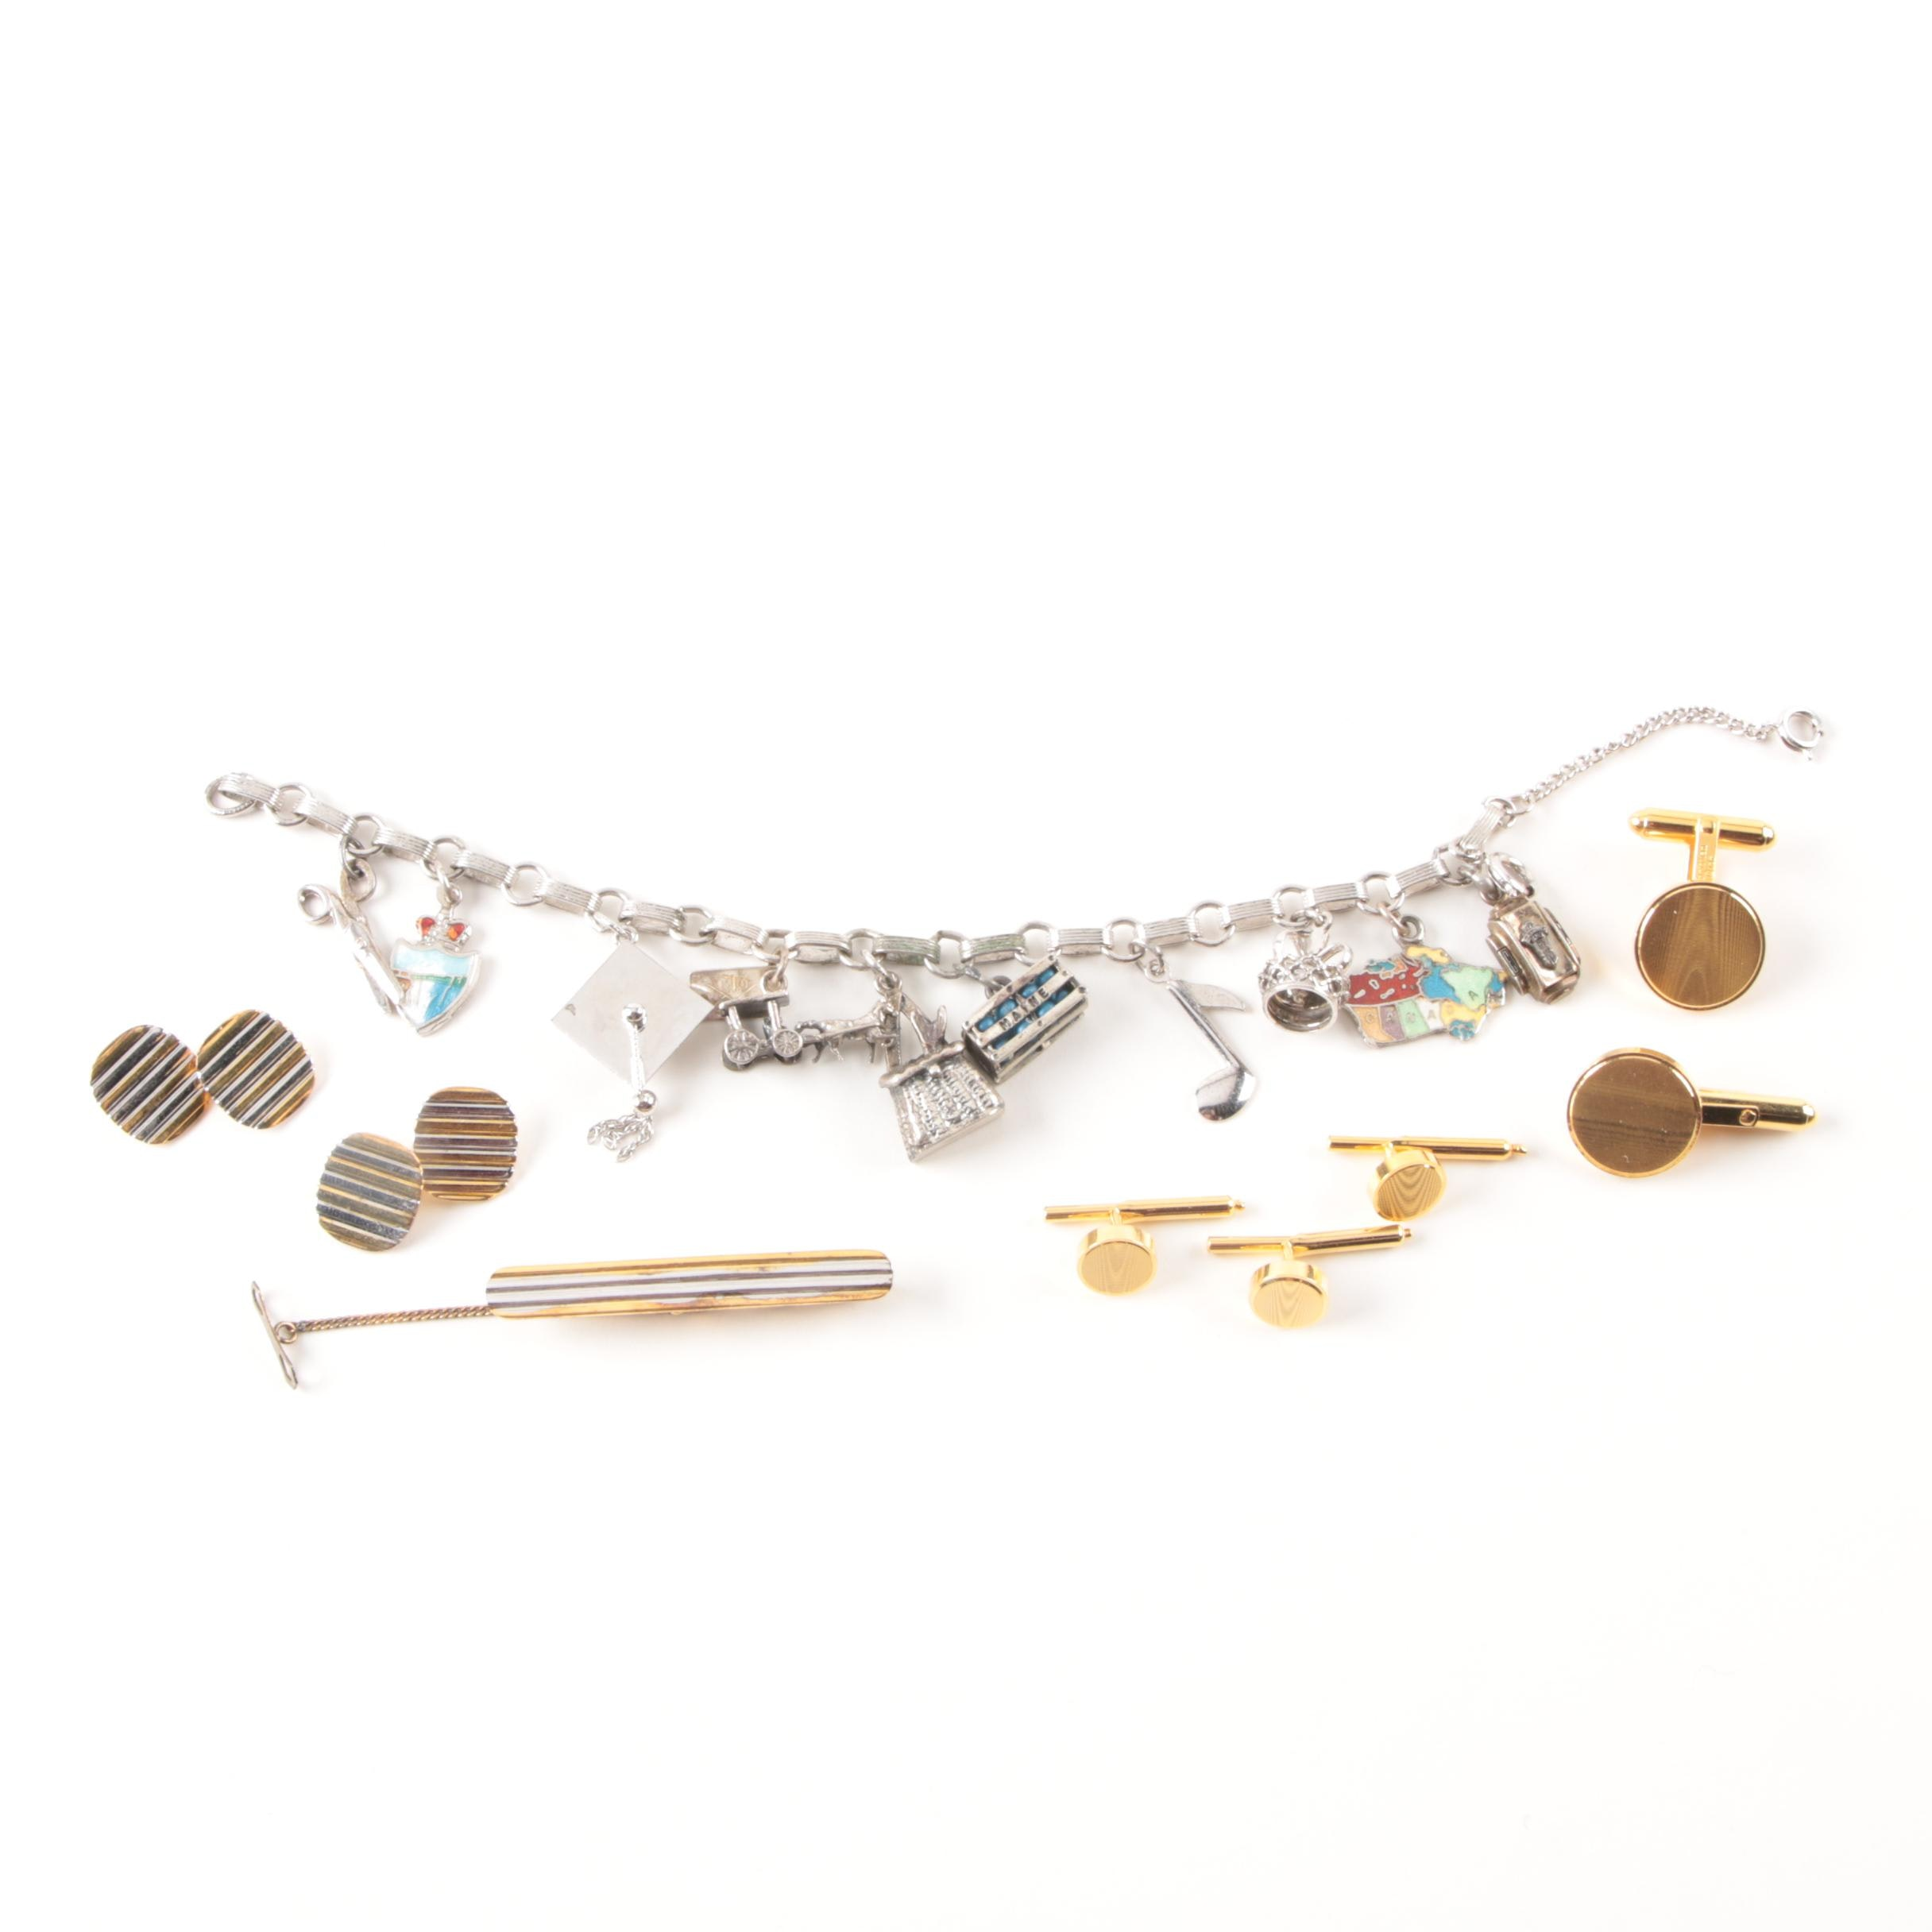 Grouping of Jewelry Including Christian Dior, Sterling, and 800 Silver